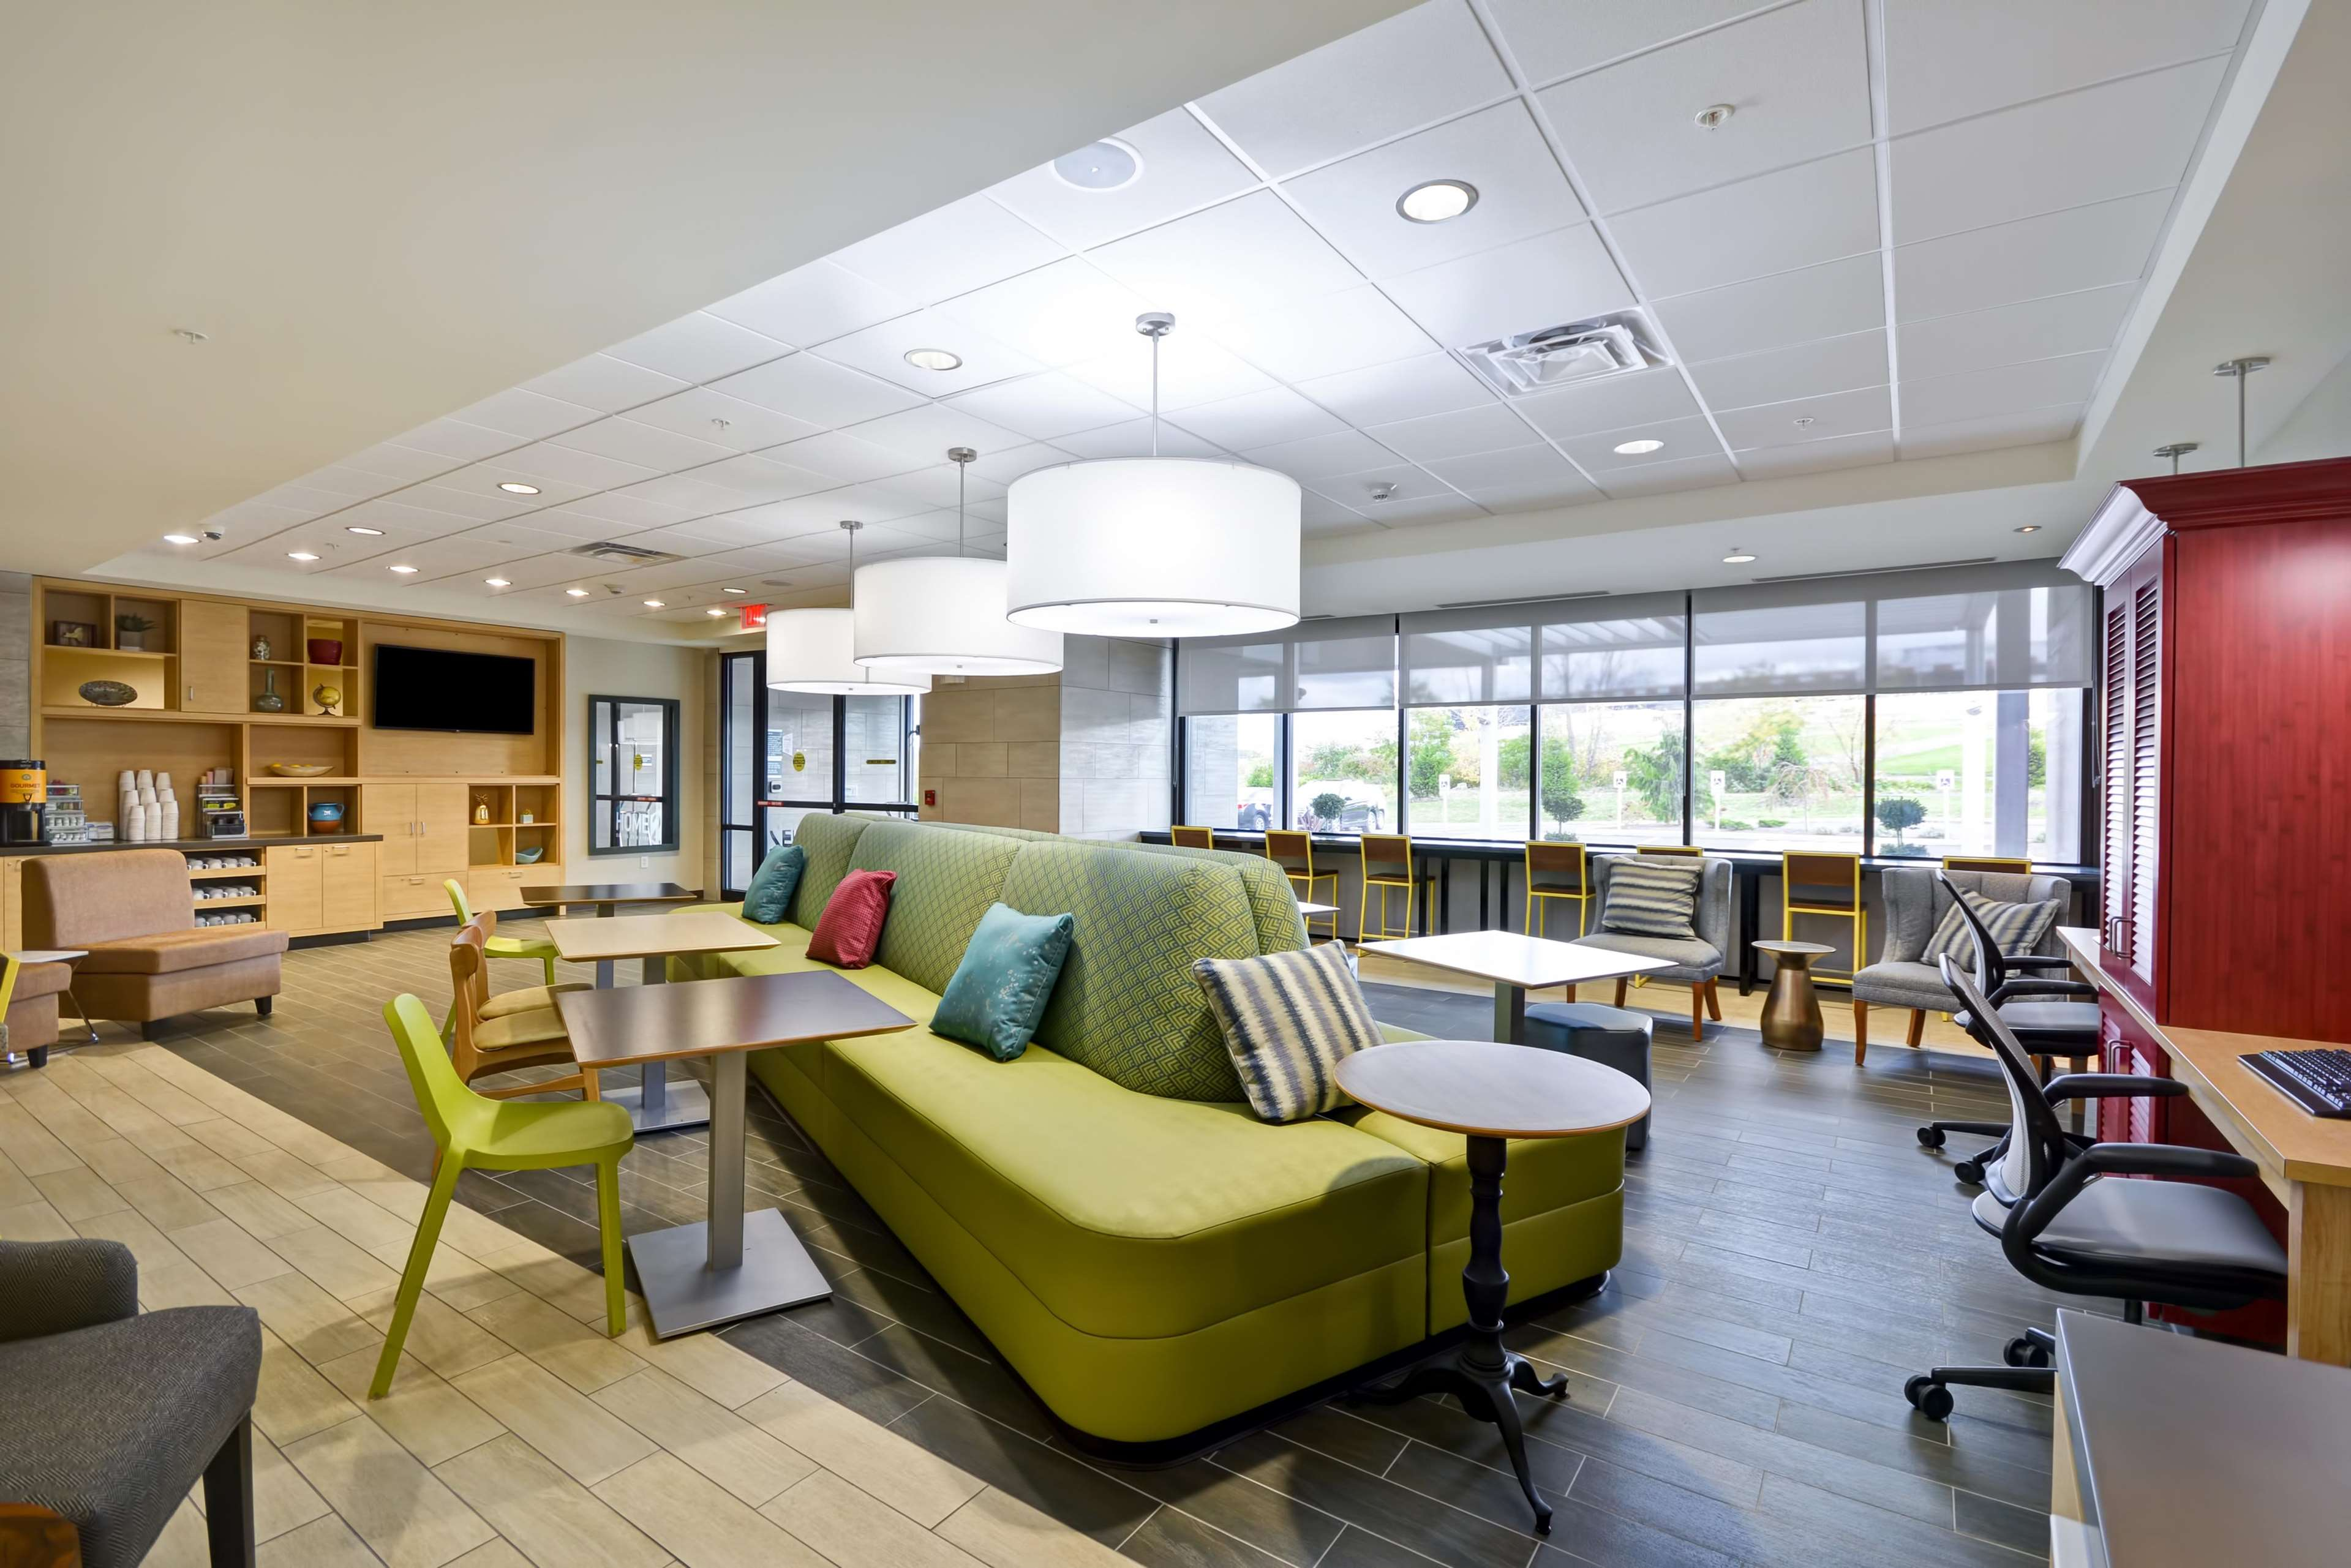 Home2 Suites by Hilton Oswego image 15